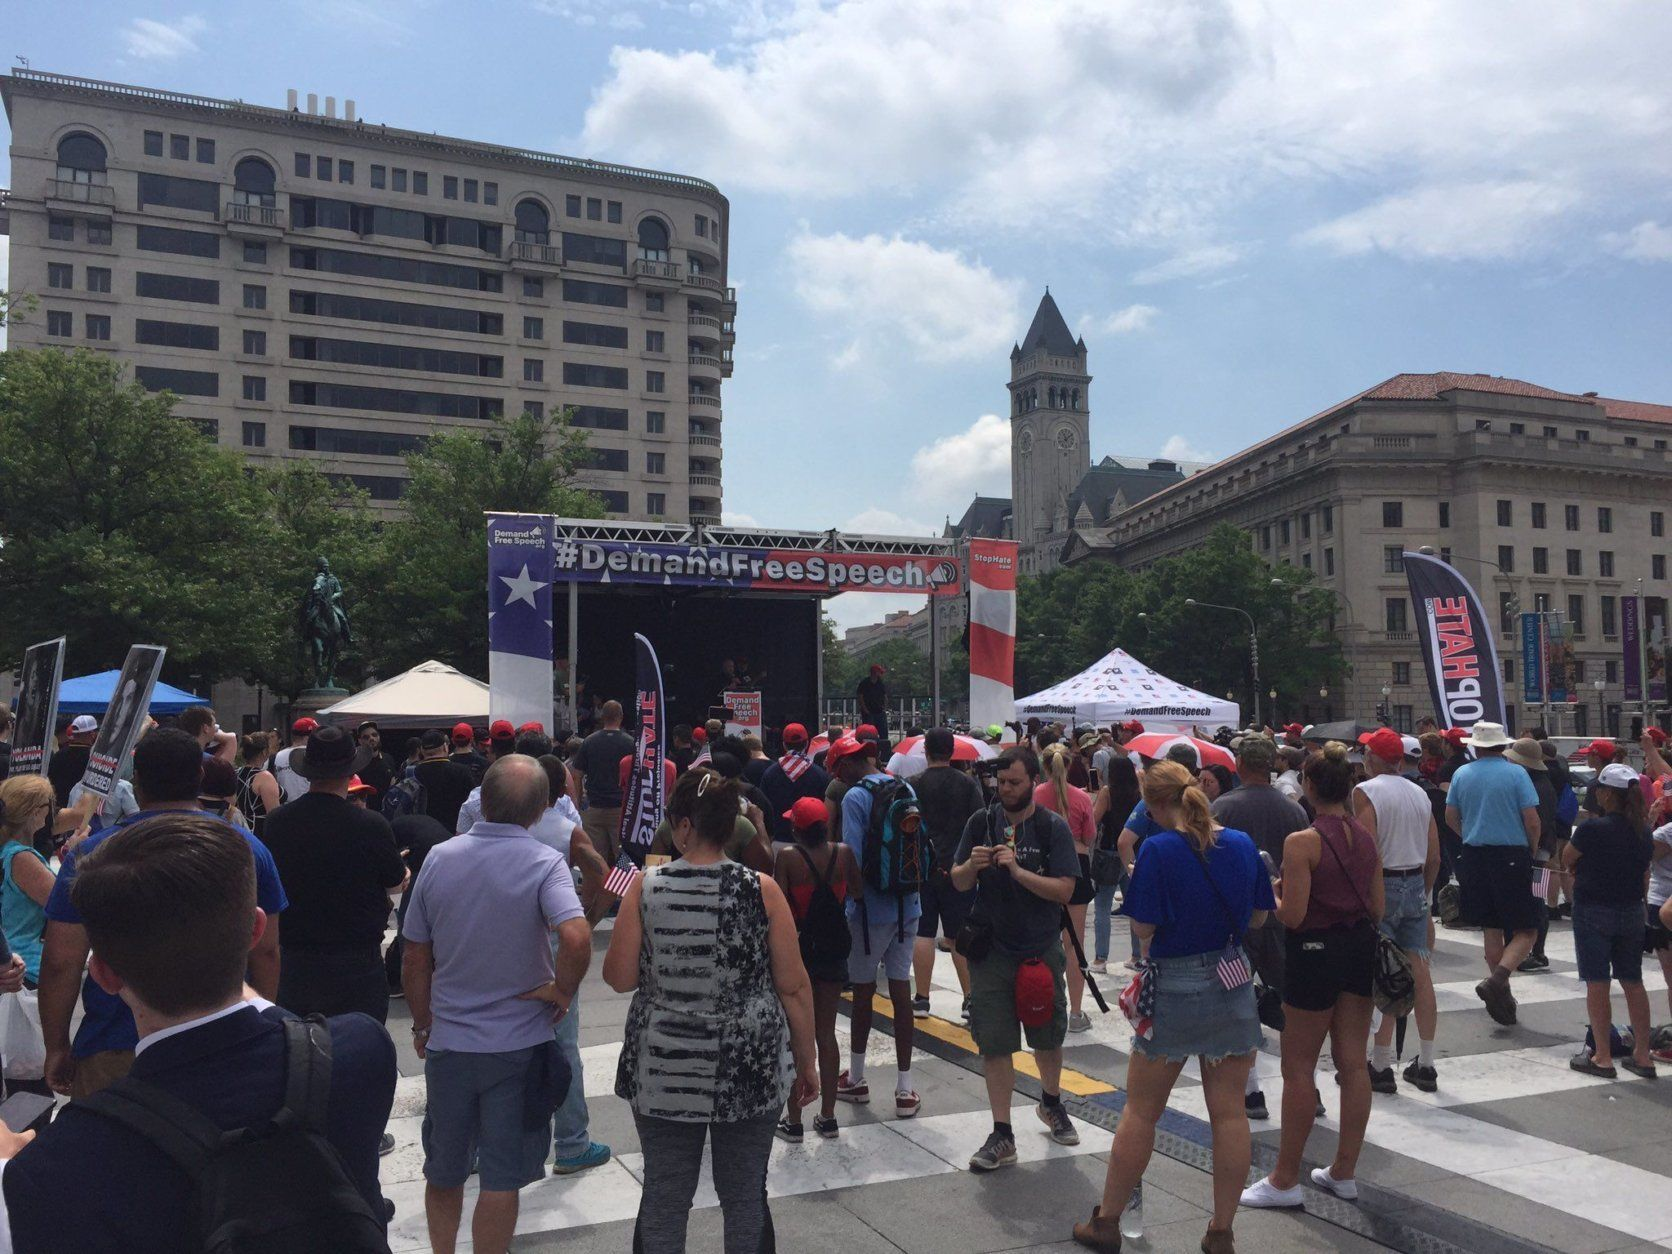 The alt-right rally is seen underway in Freedom Plaza in D.C. on Saturday, July 6, 2019. (WTOP/John Domen)